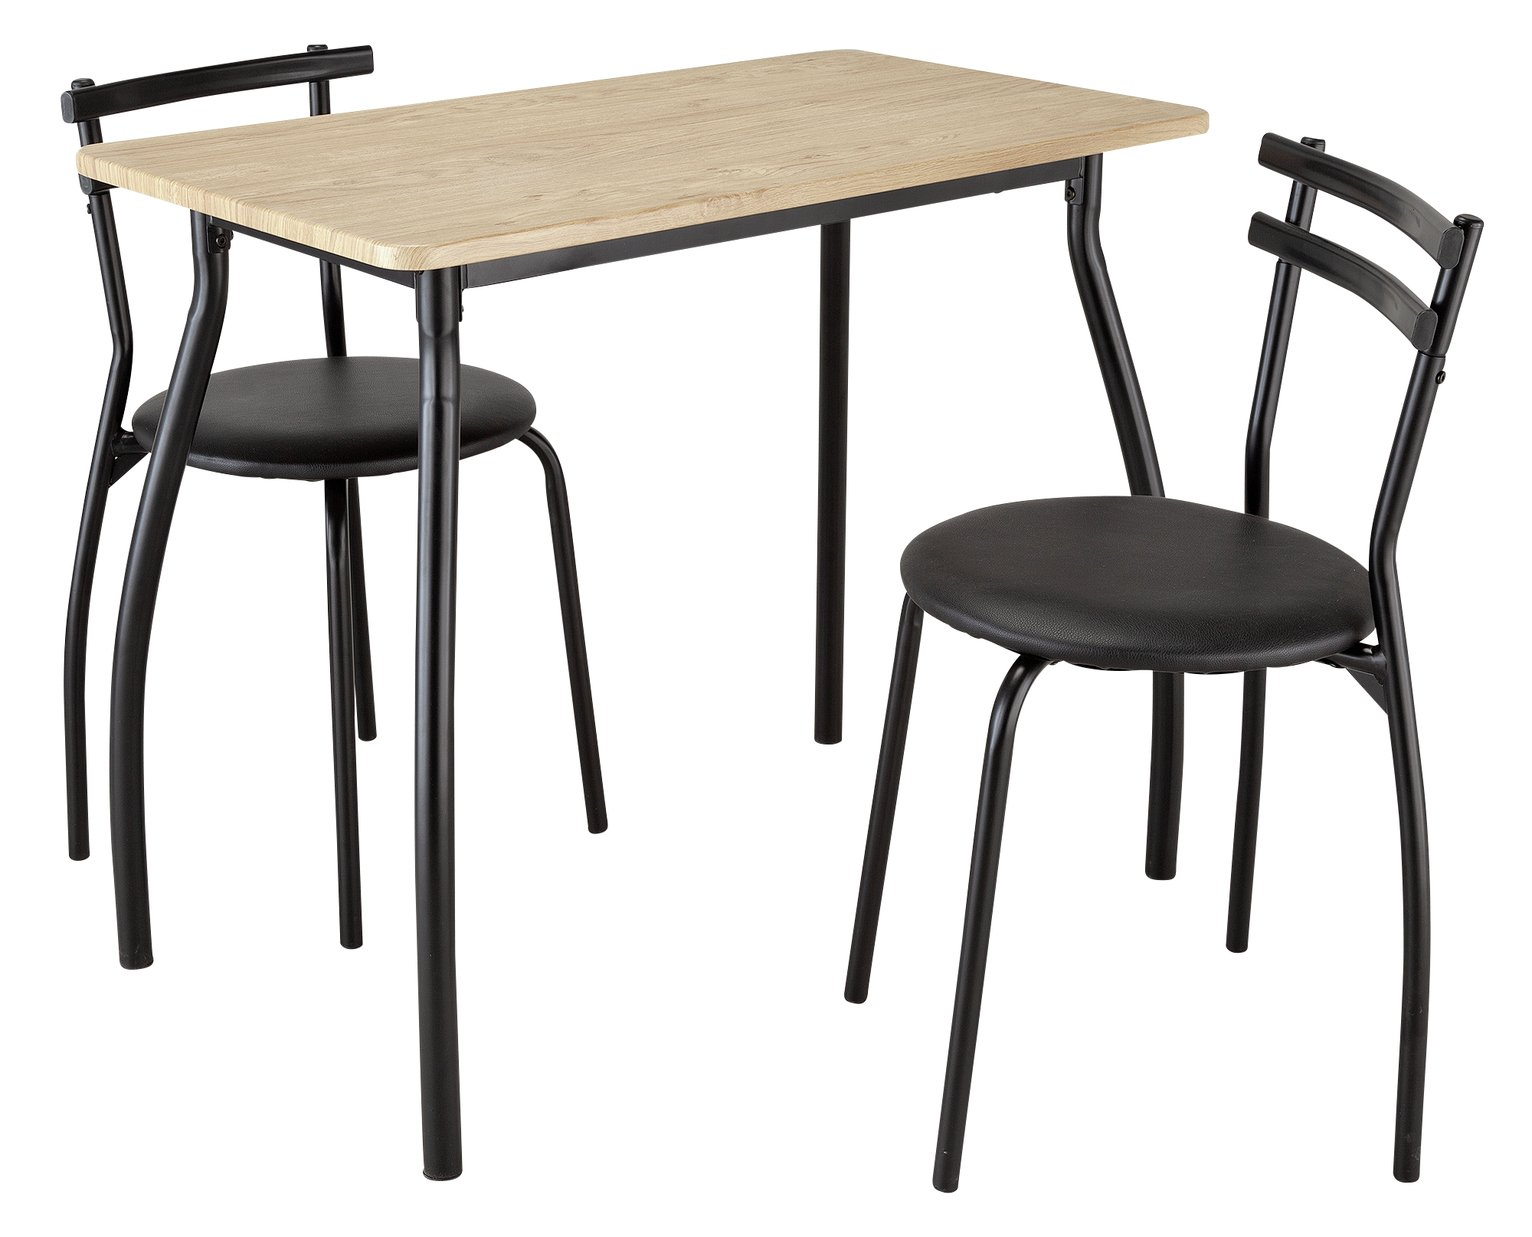 Argos Home Leon Oak Effect Dining Table & 2 Black Chairs